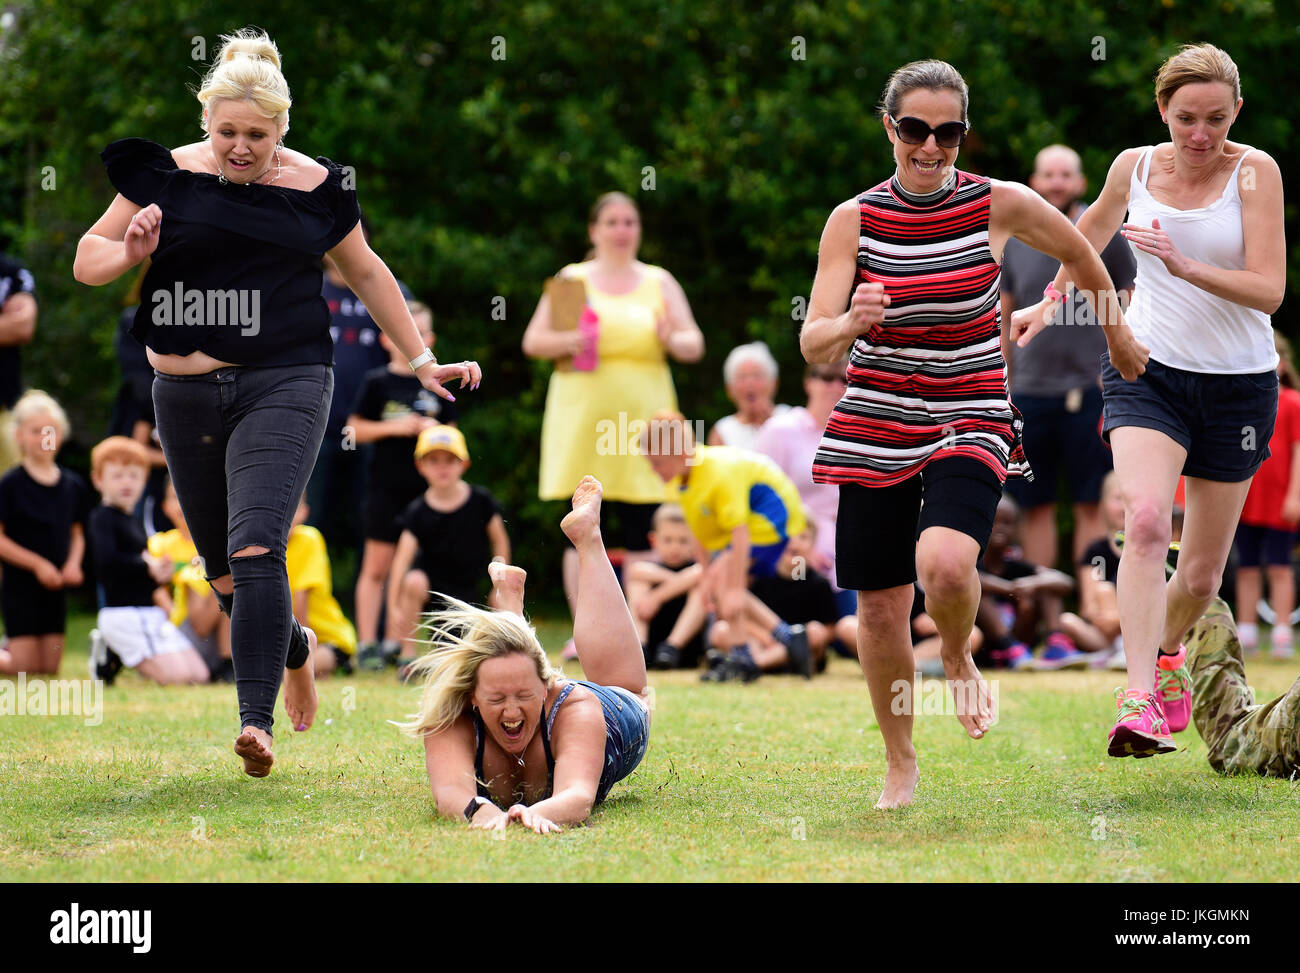 Mum's race event at an infants school sports day, Bordon, Hampshire, UK. 14 July 2017. - Stock Image